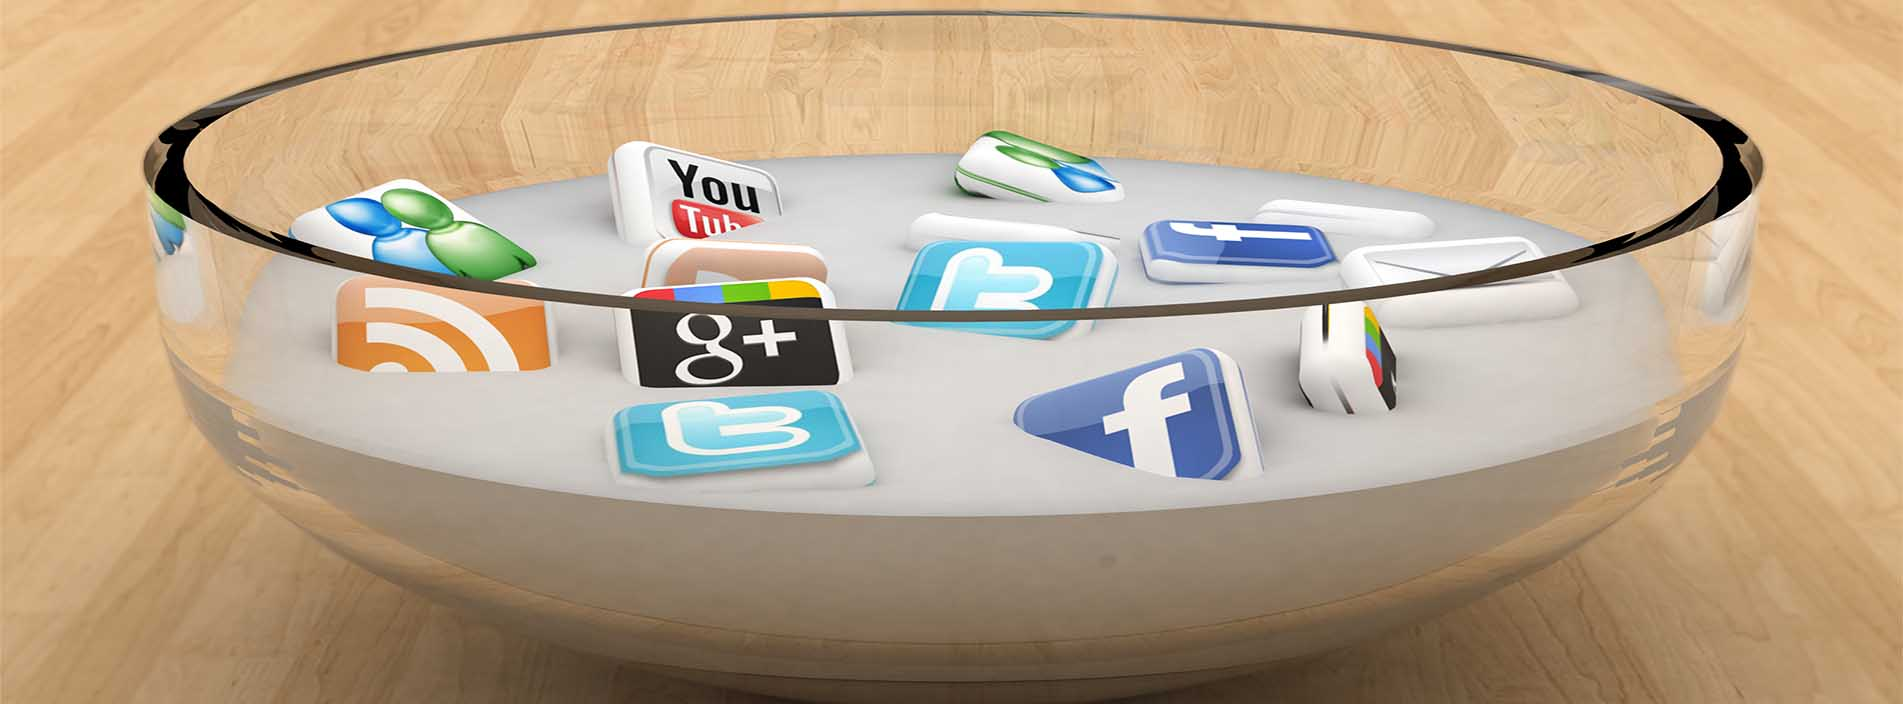 social-media-soup-on-wooden-surface2